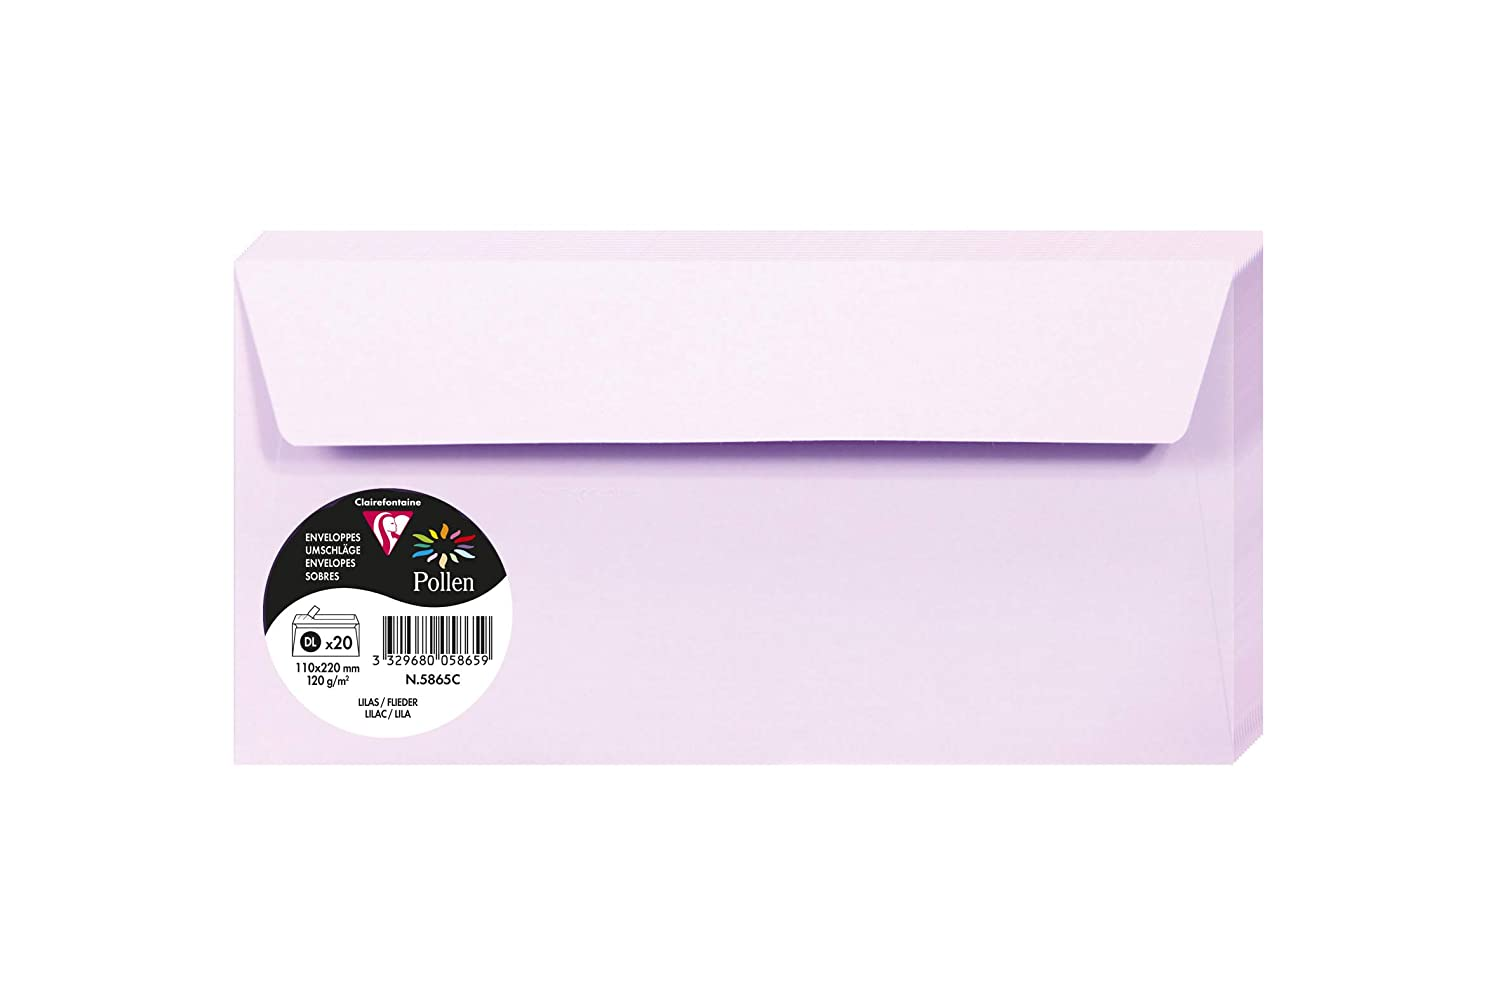 Clairefontaine Pollen Envelopes Pack of 20 22 x 11 x 0.10 Lilac